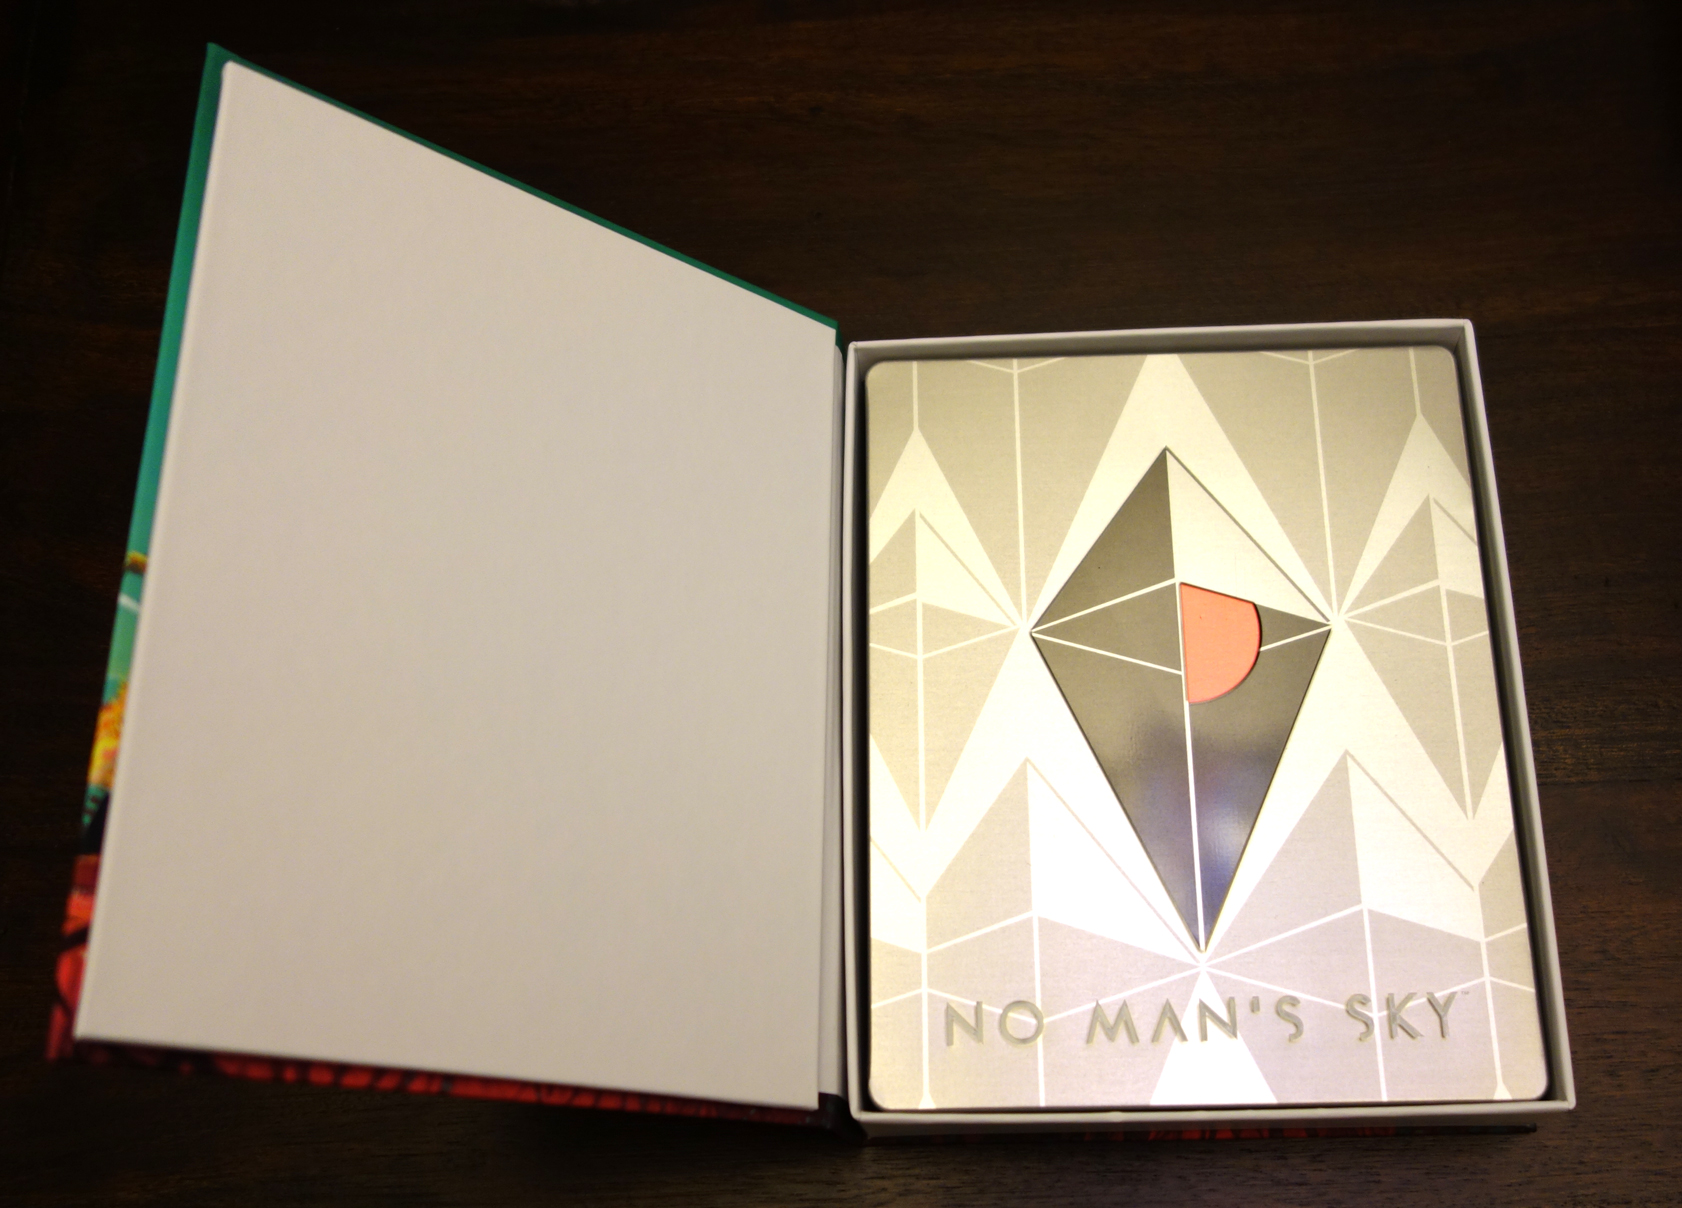 'No Man's Sky - Limited Edition PS4 box inner and steelbook